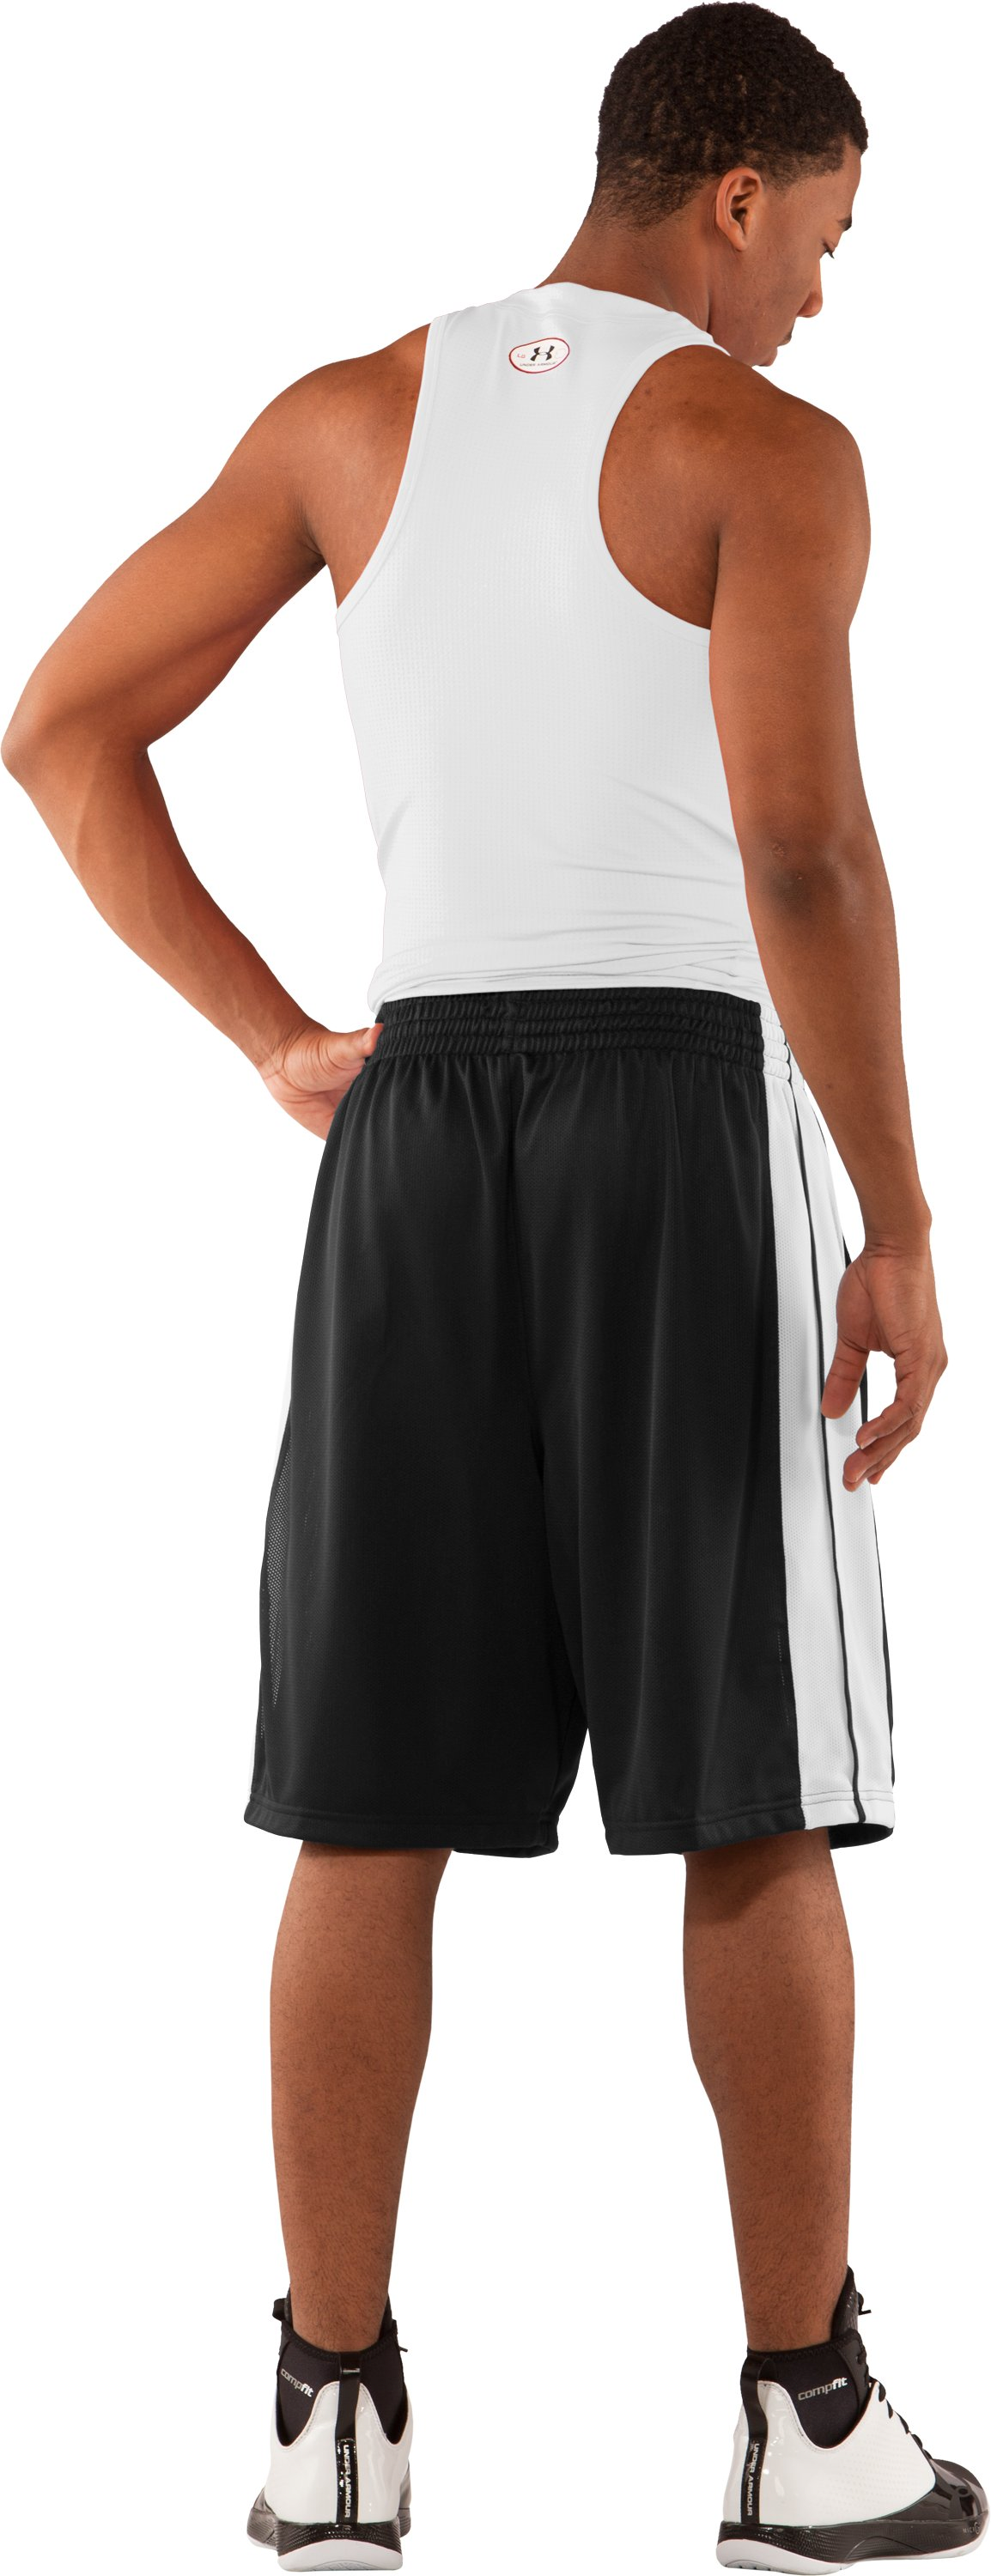 "Men's 10"" Basketball Practice Shorts, Black , Back"